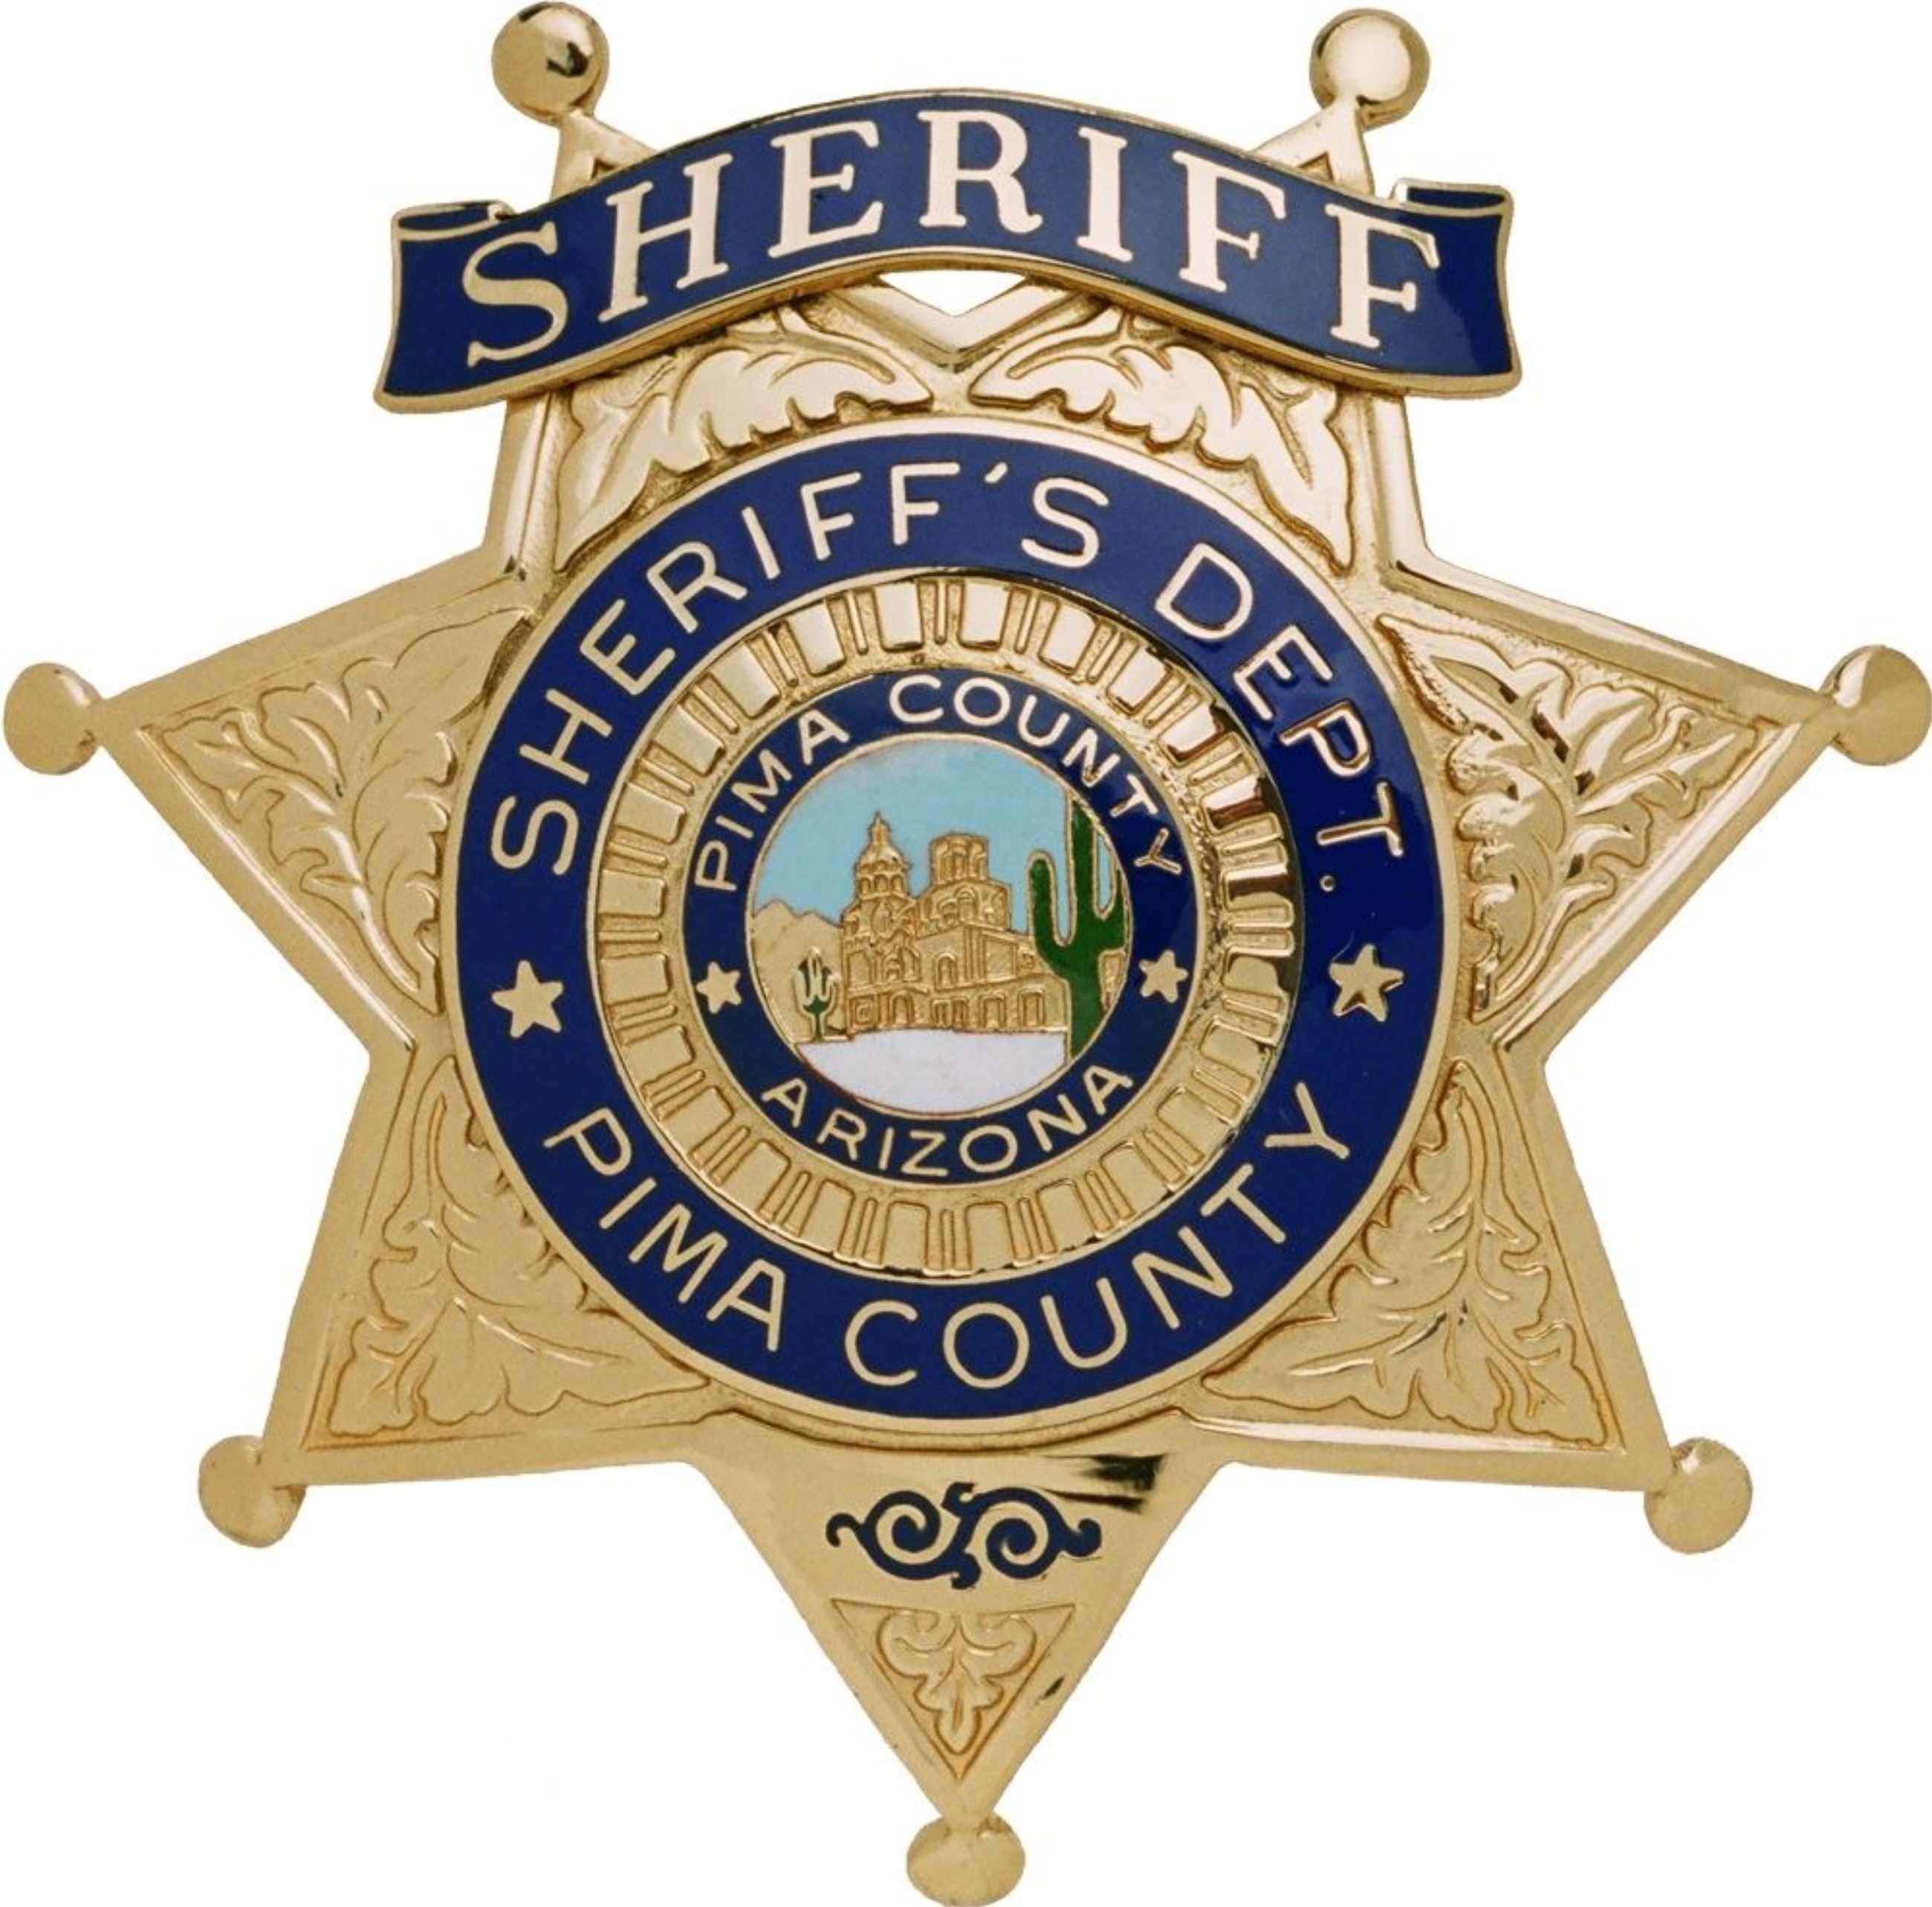 Pima County Sheriffs Office Shield